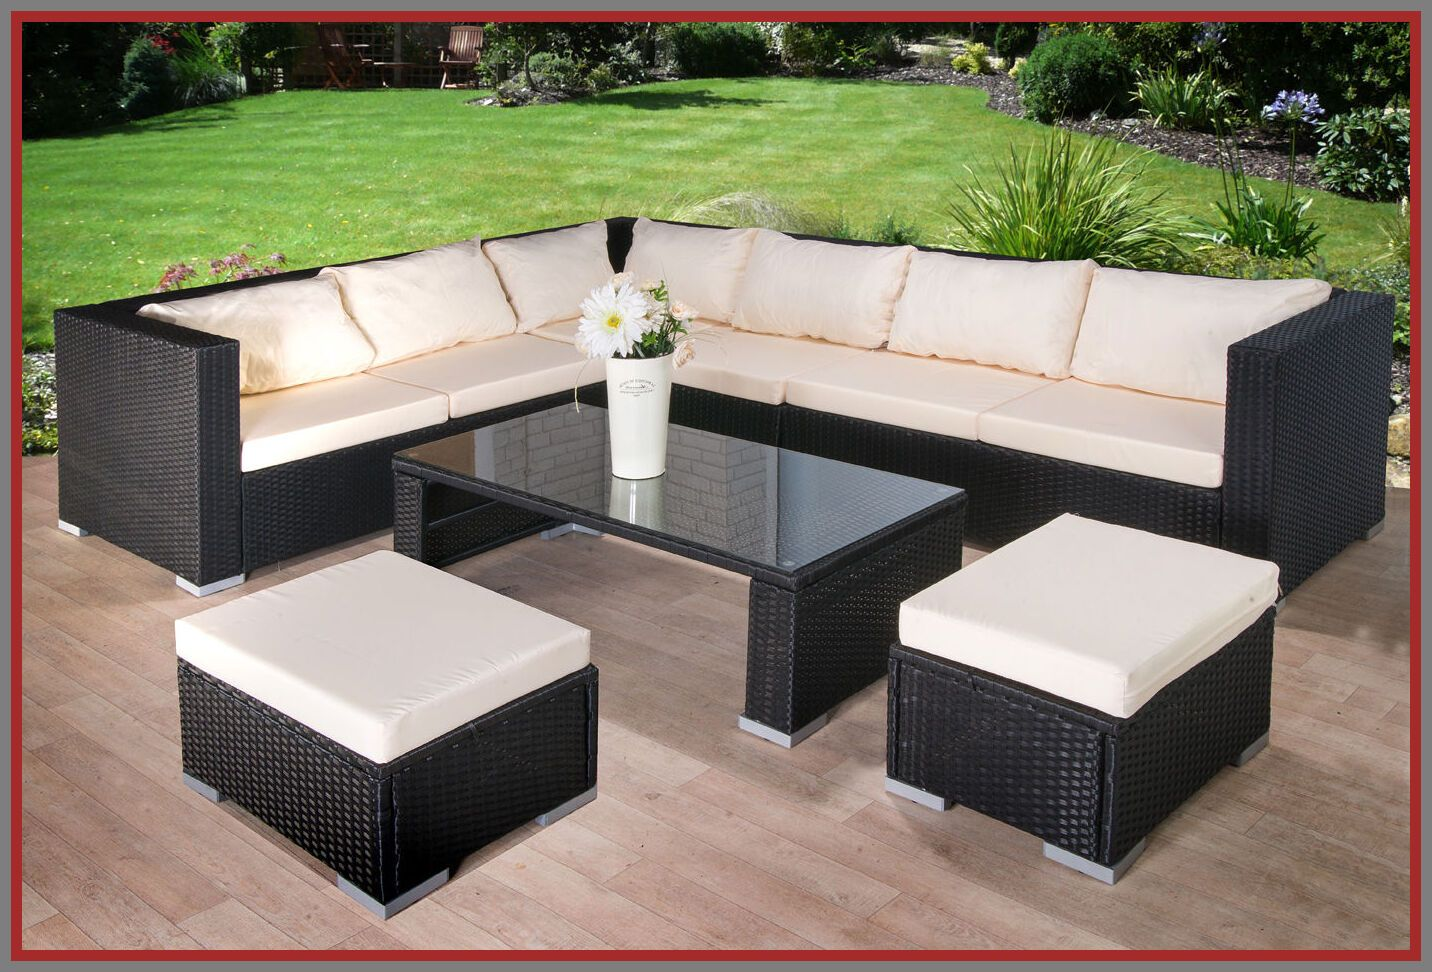 95 Reference Of Patio Furniture Rattan Uk In 2020 Garden Furniture Design Rattan Garden Furniture Sets Modern Garden Furniture